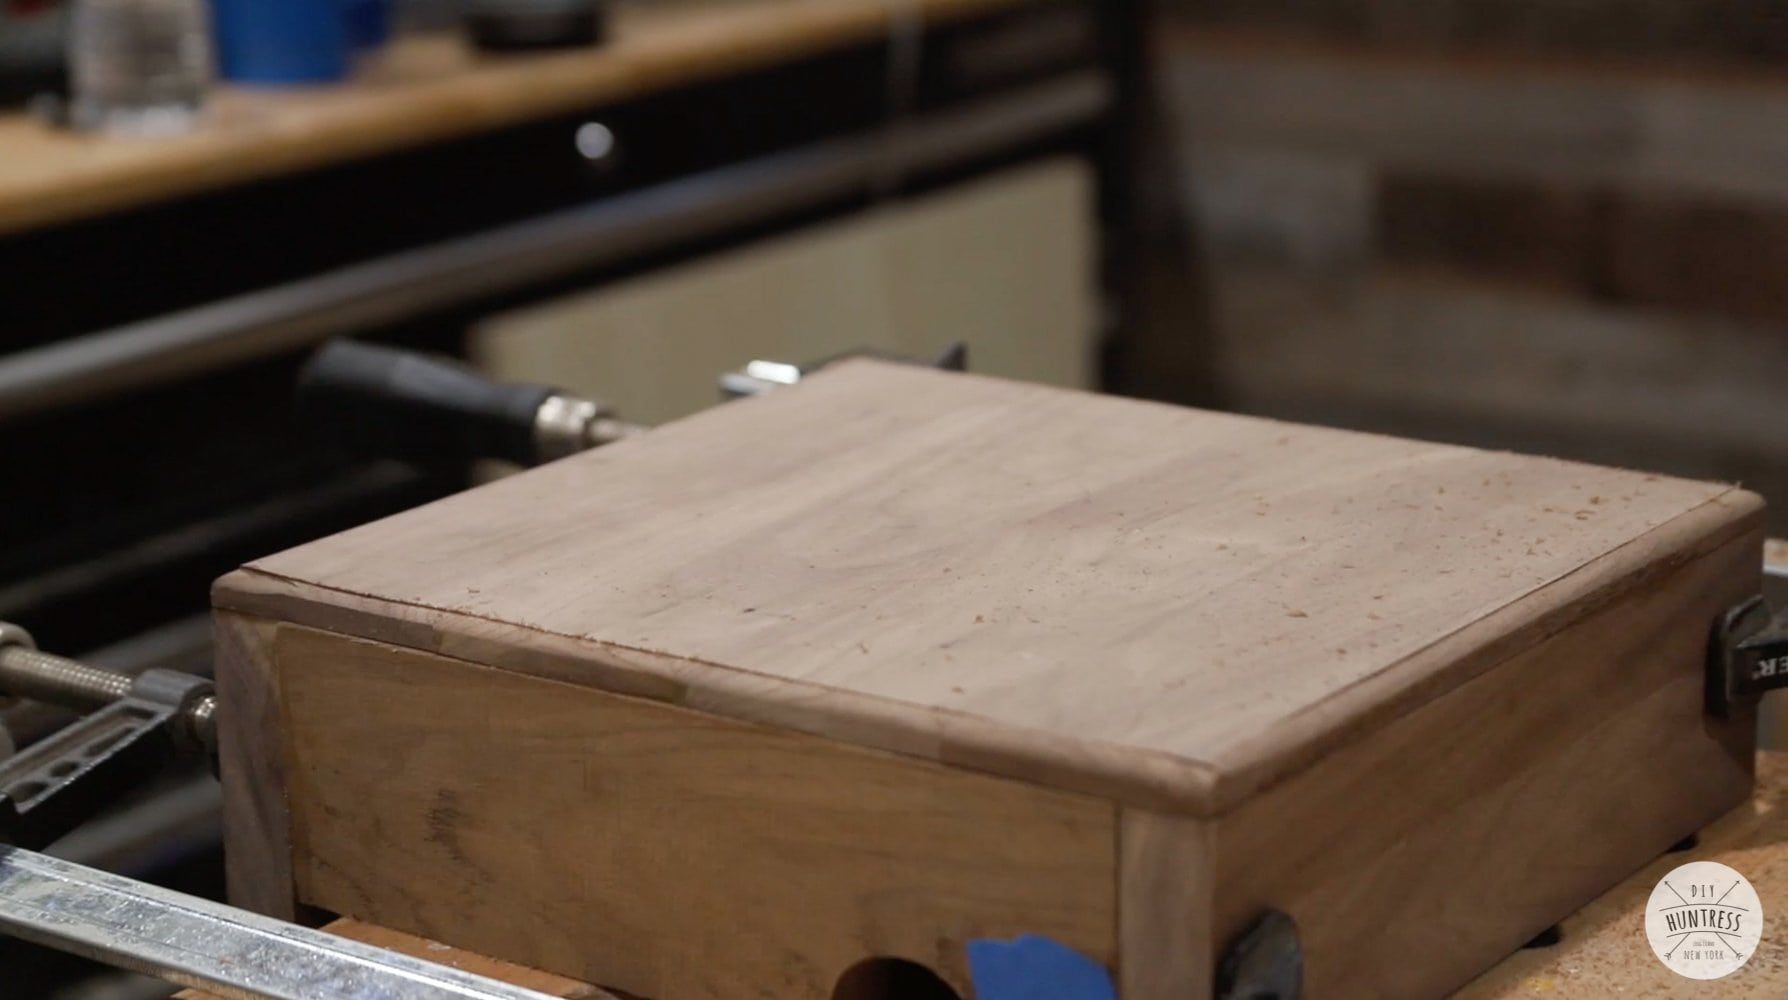 rounding over wood edges with router